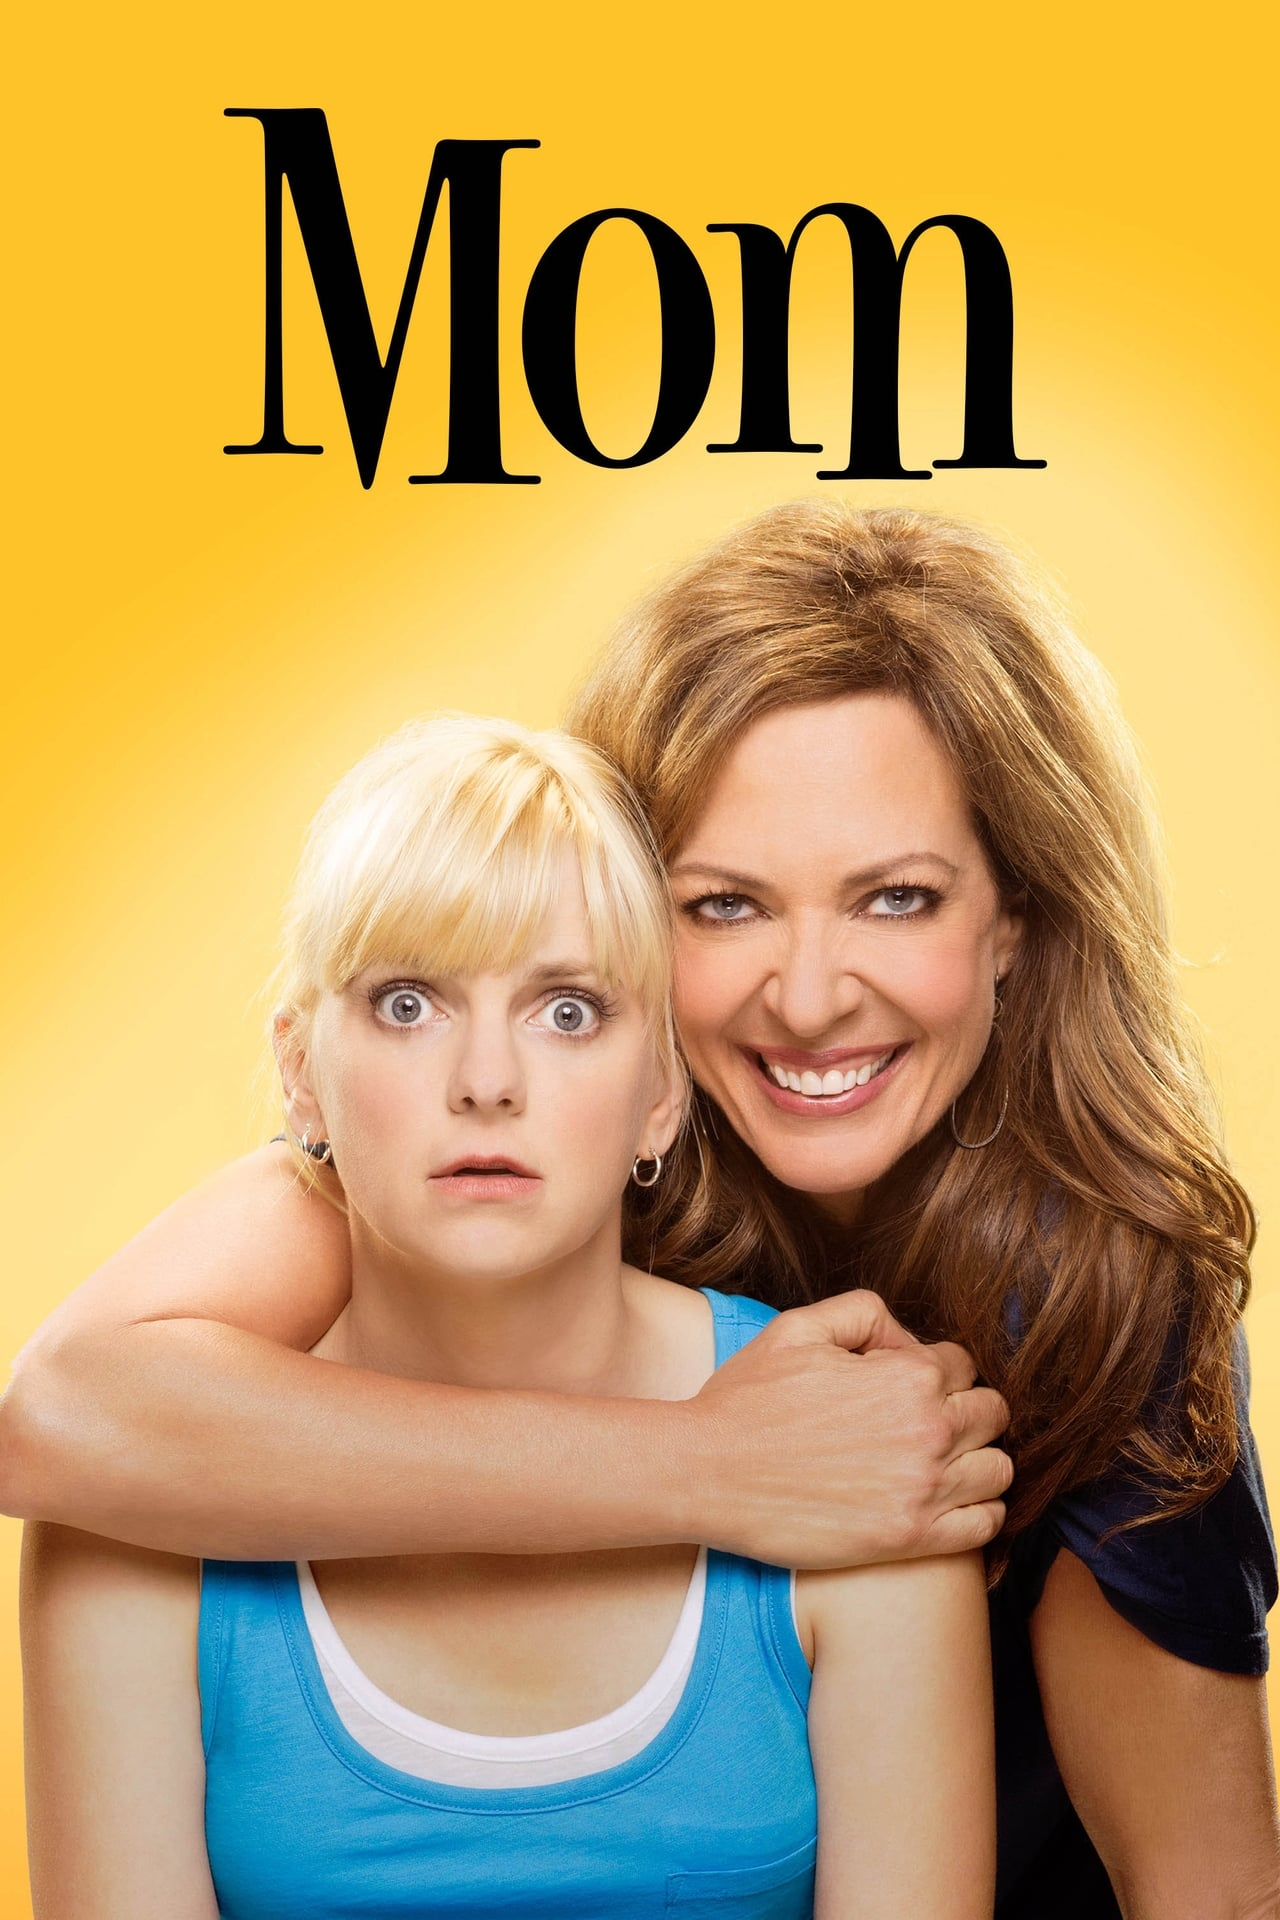 Watch Mom In Bedroom Camera: Watch Family Movies Online For Free With